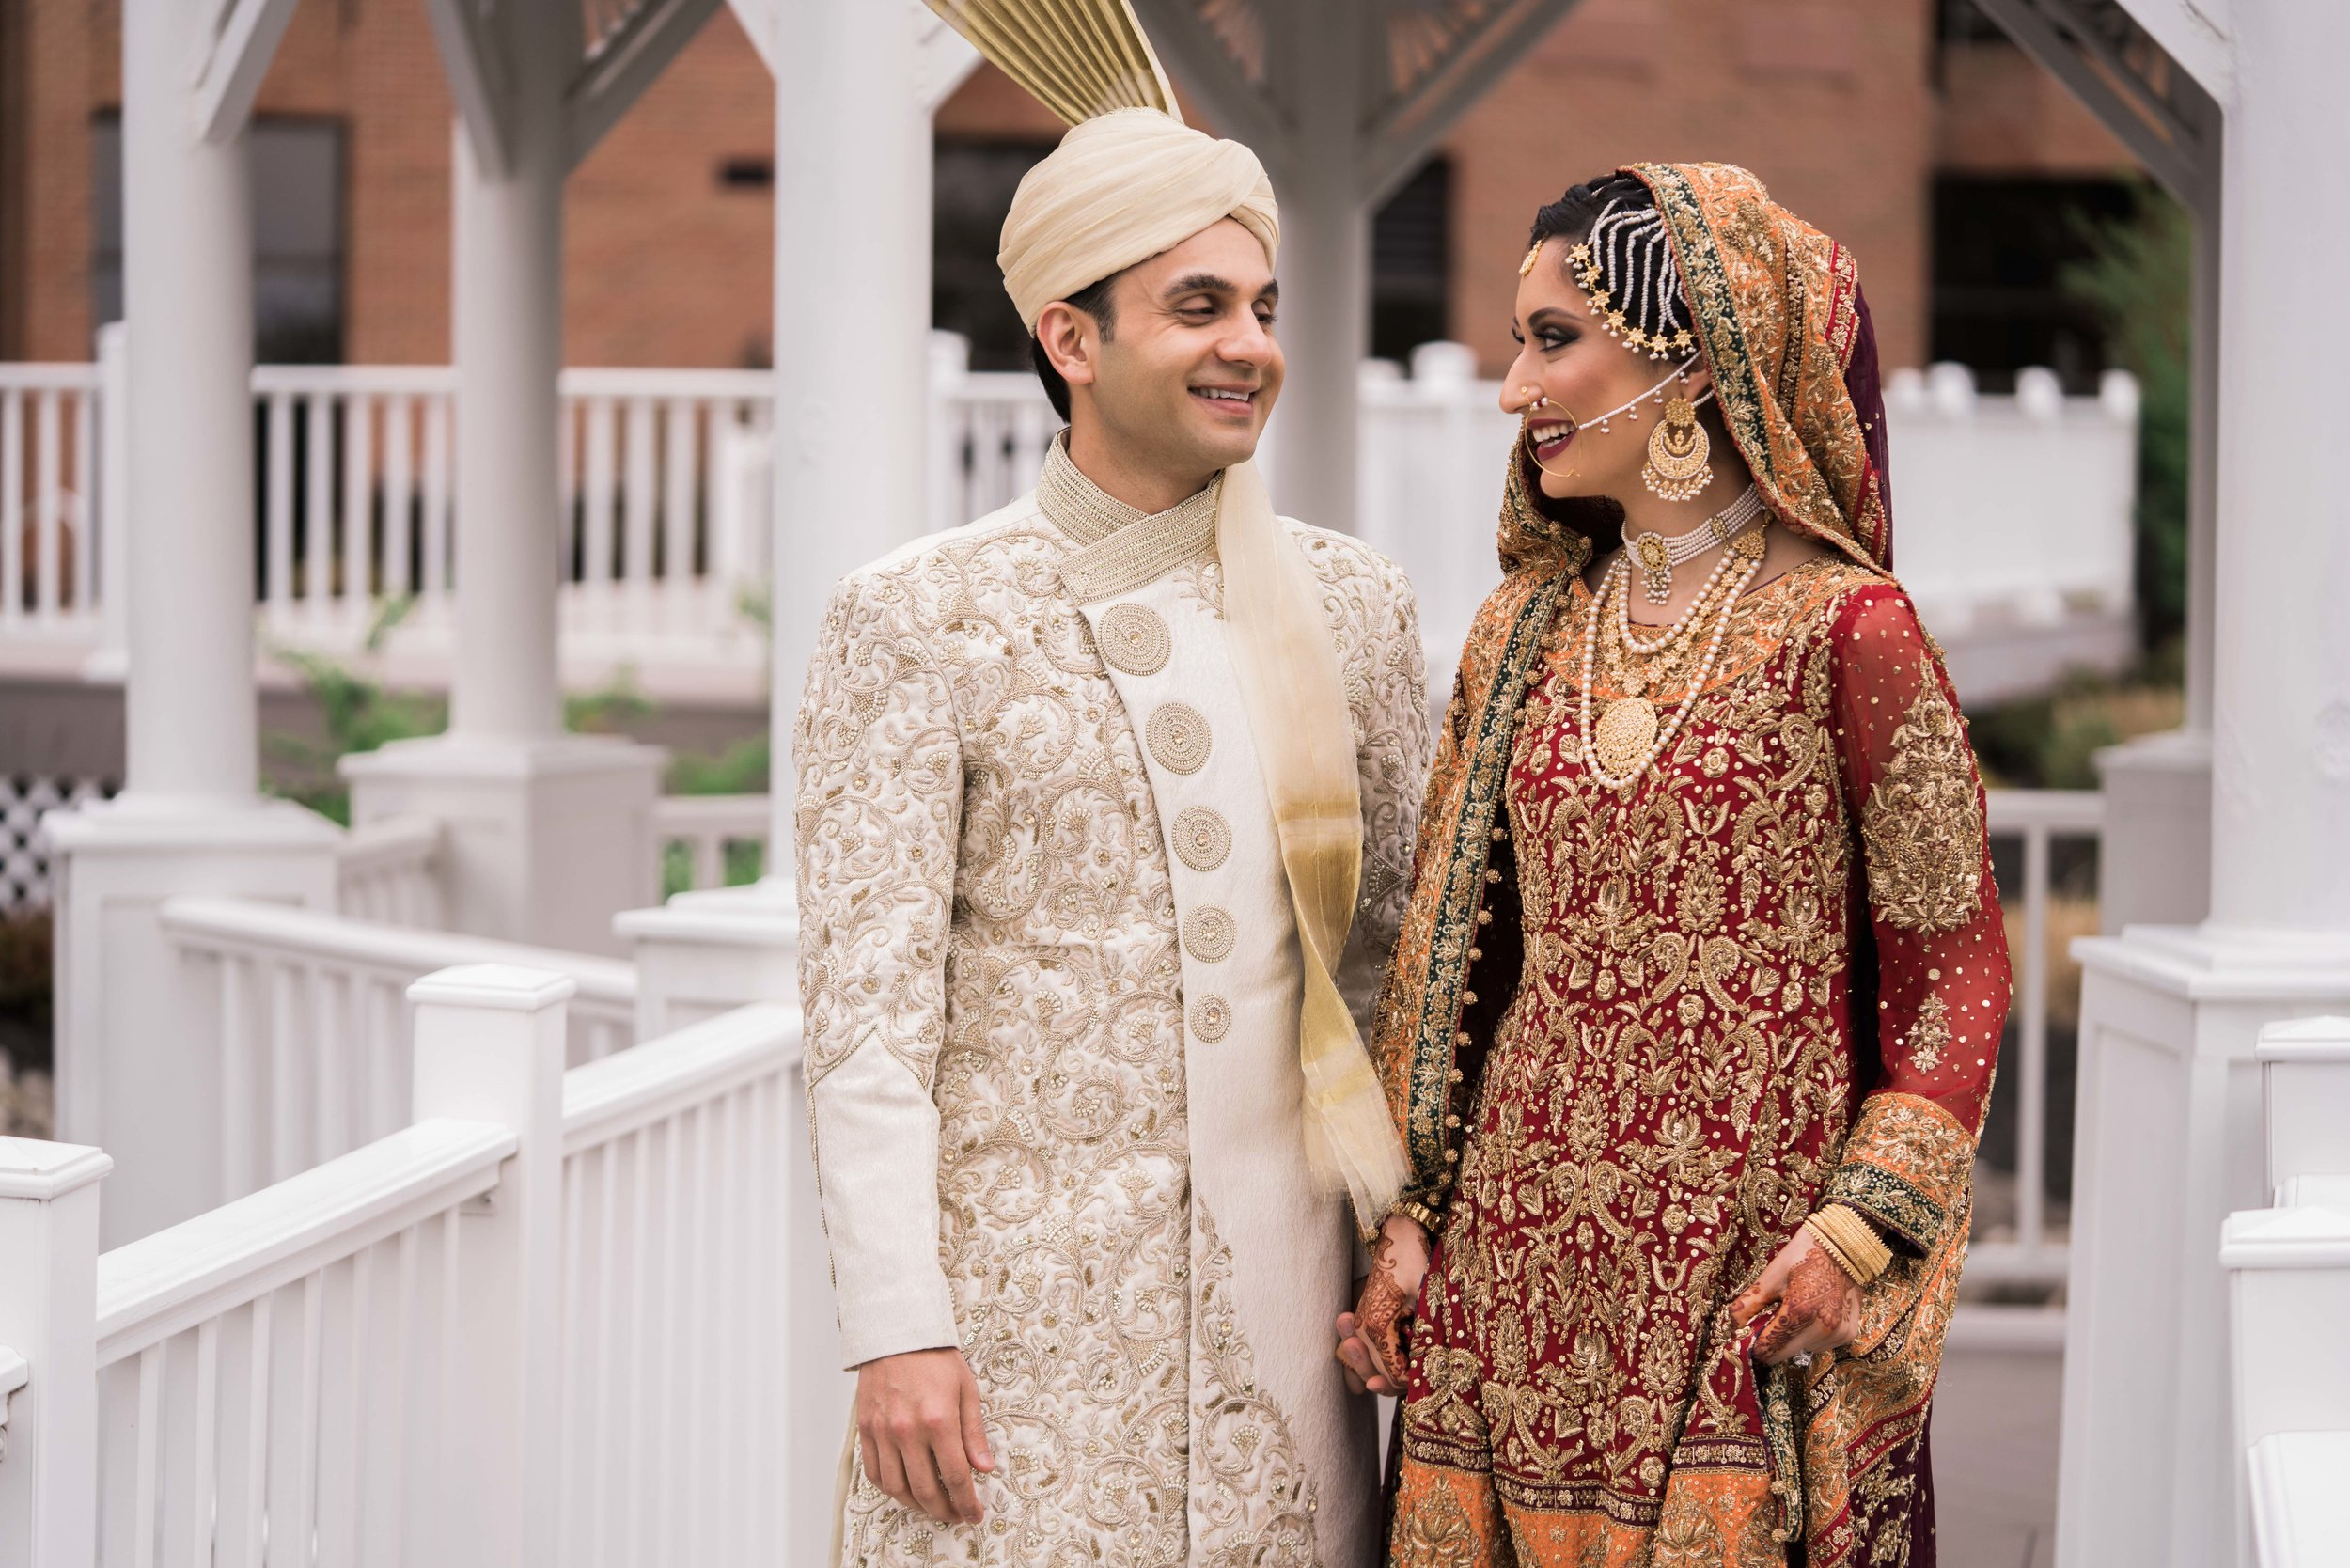 Nadia and Usman Blog Weddig Photography at Wintergarden by Monroe's in Rochester NY by Stefan Ludwig Photography-14.jpg